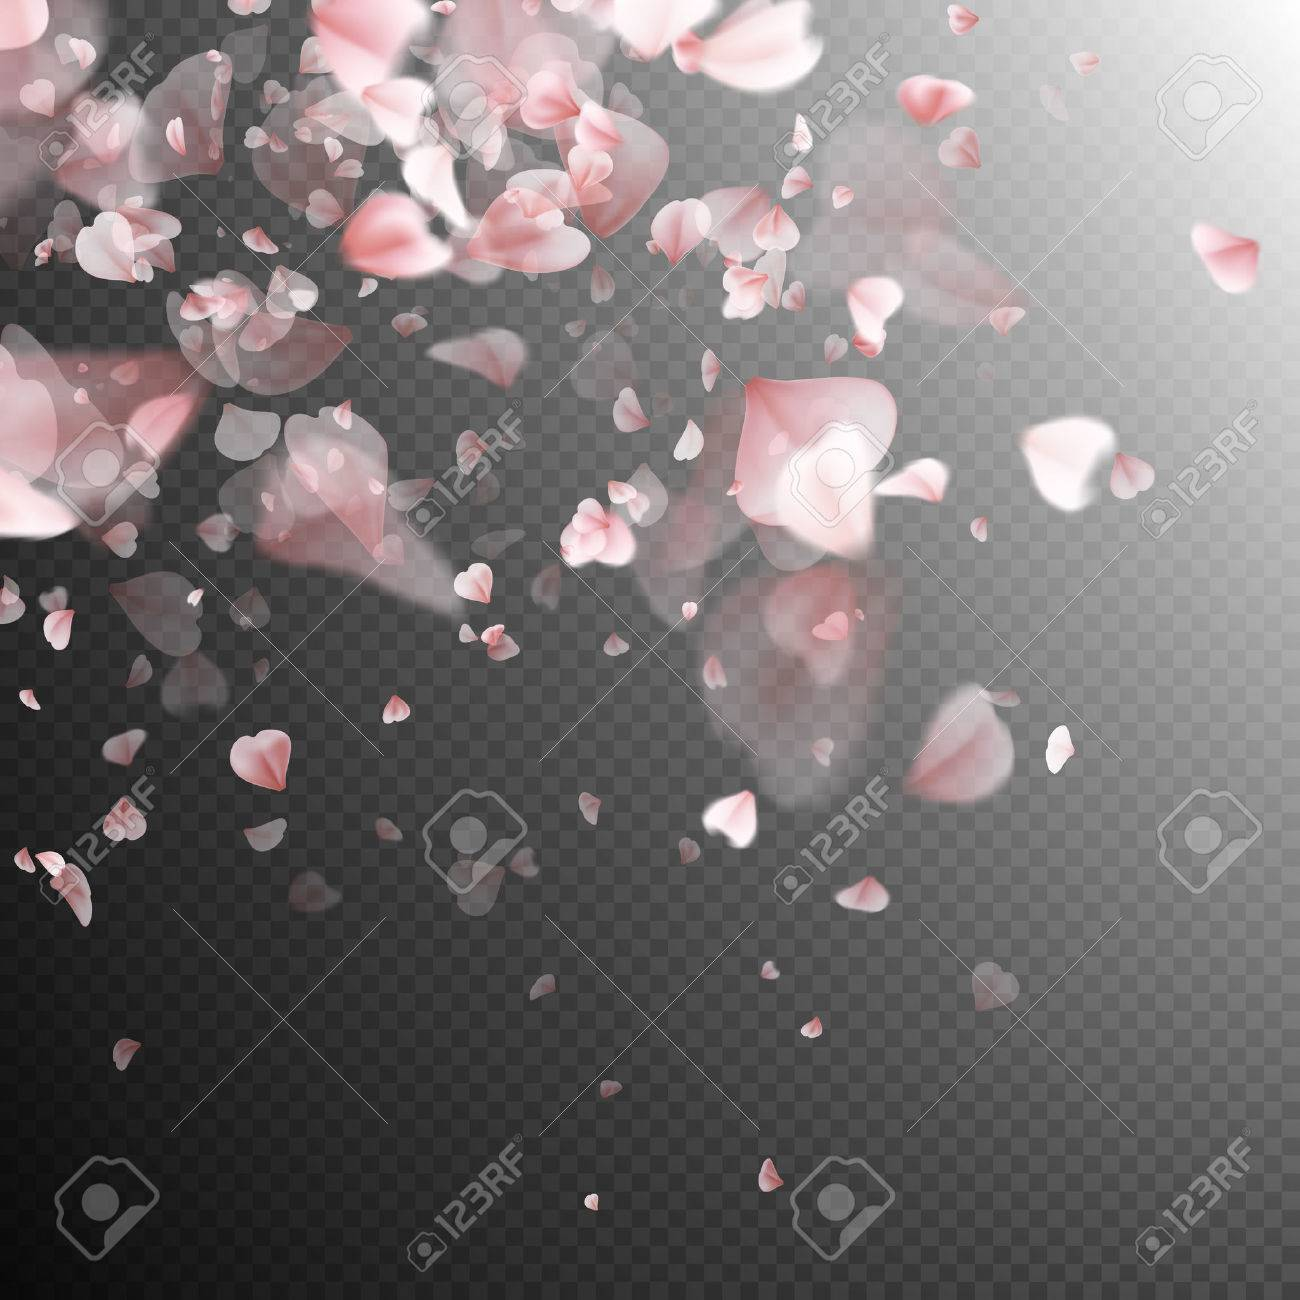 Pink petals background. EPS 10 vector file included - 68245428